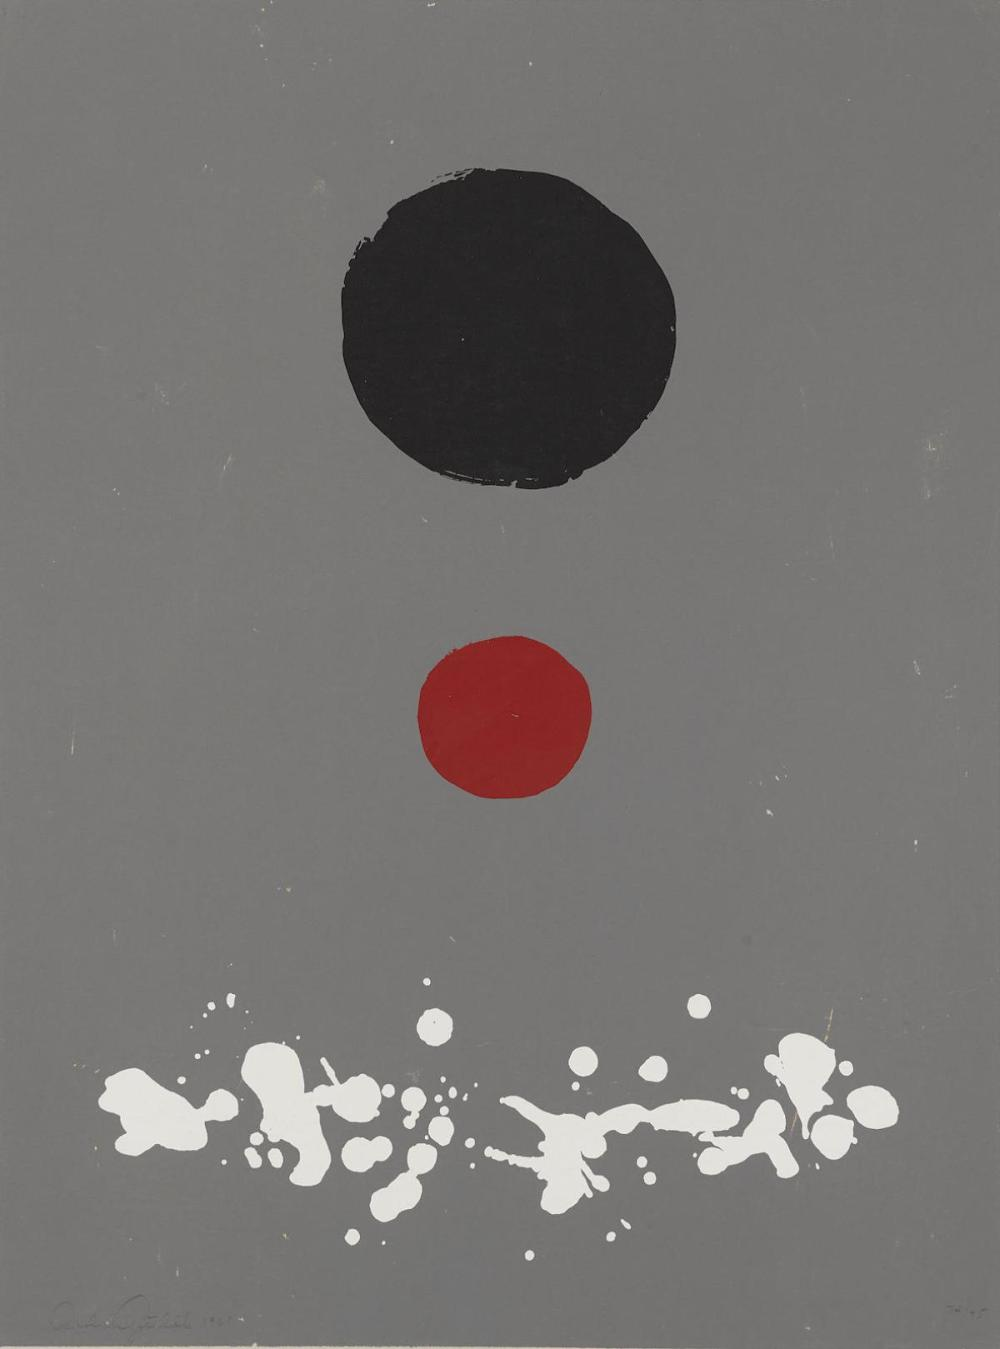 Jetsam by Adolph Gottlieb